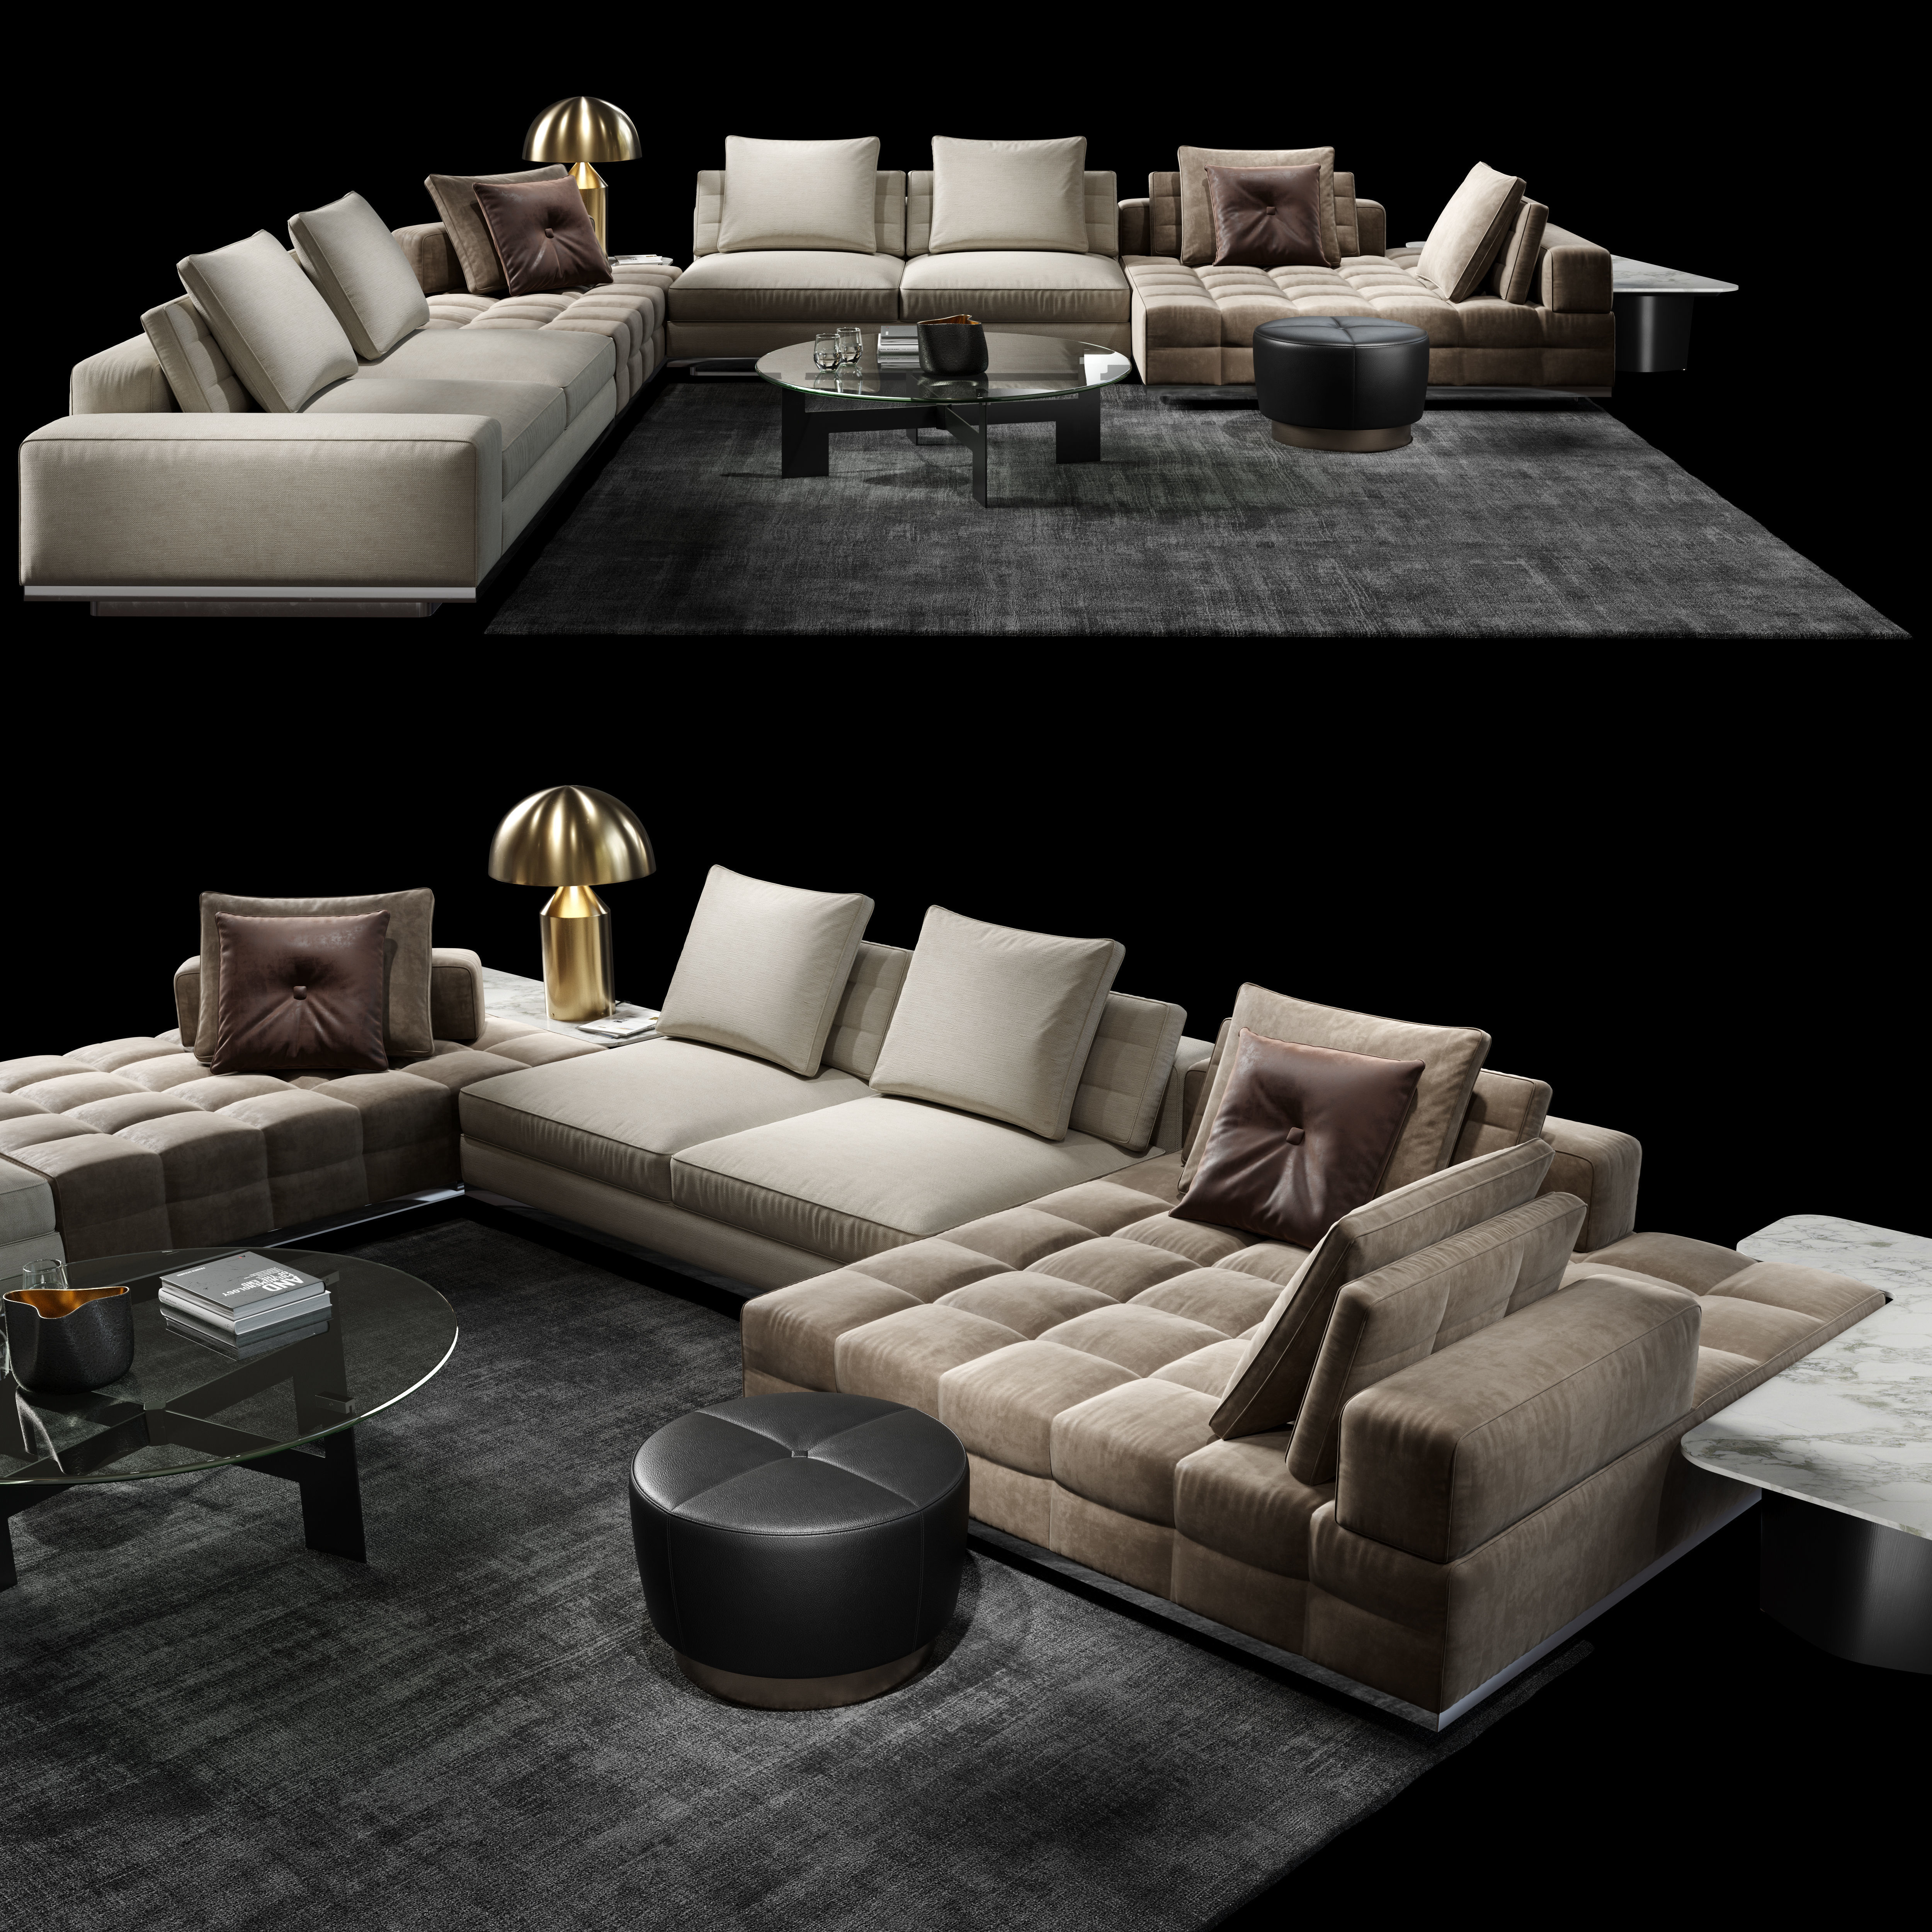 Minotti Lawrence Clan Living Room Sofa 3d Model